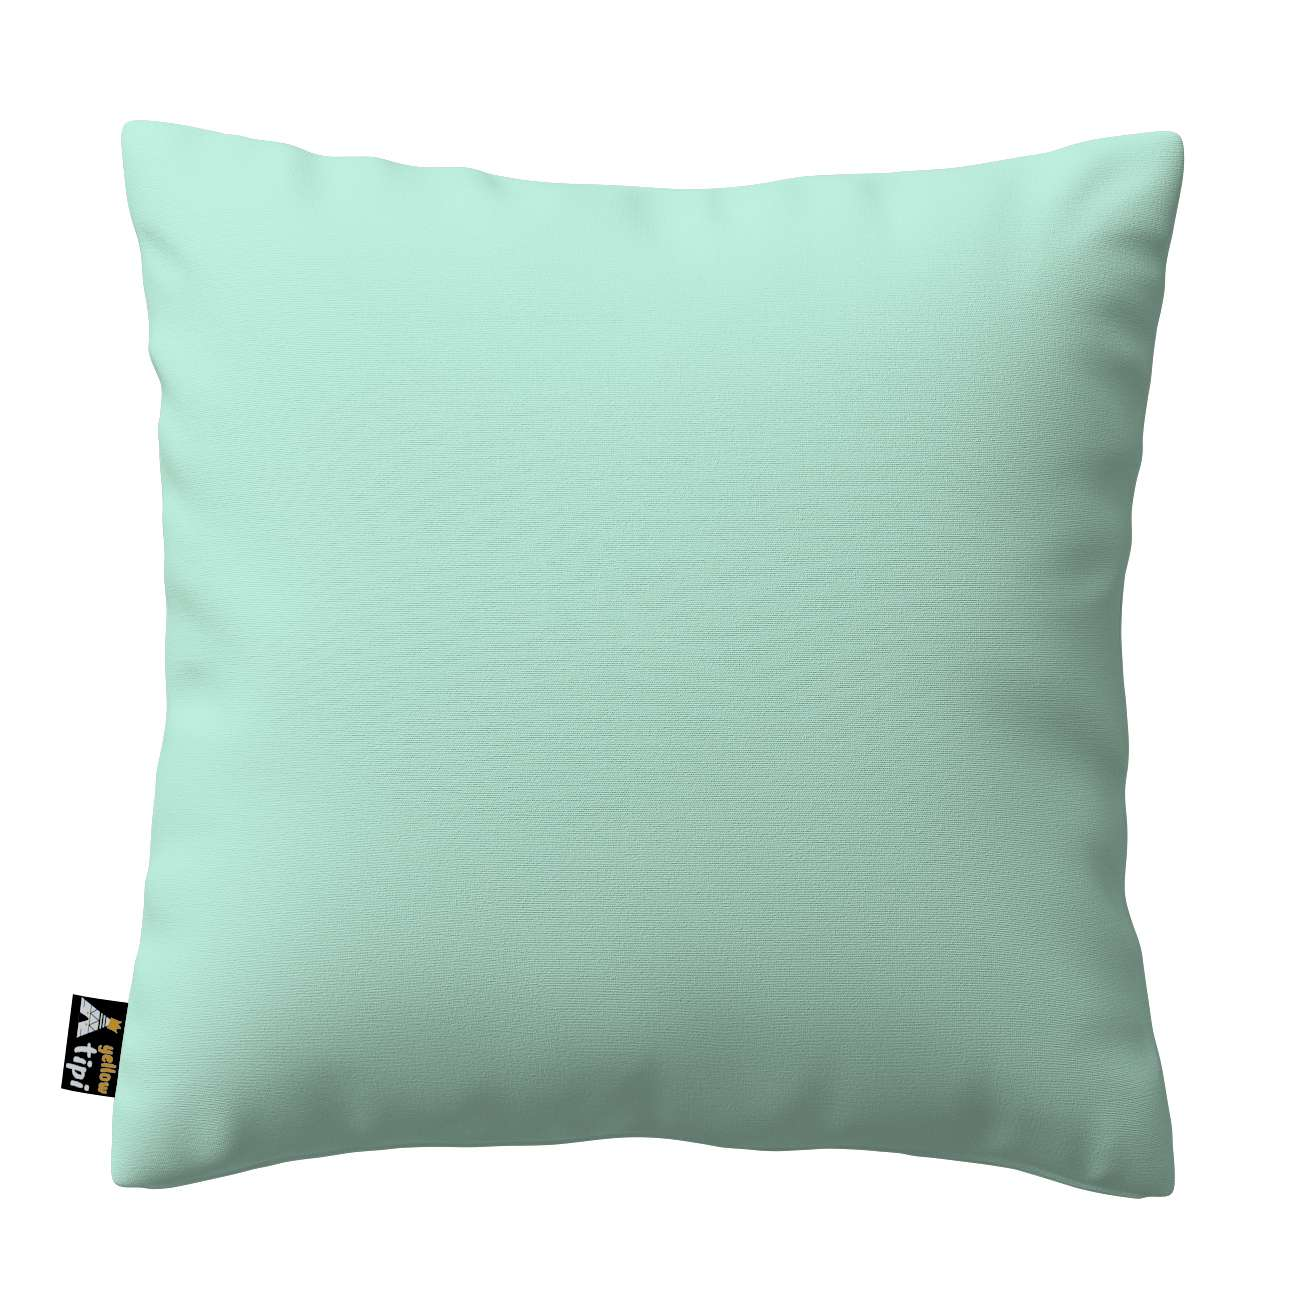 Milly cushion cover in collection Happiness, fabric: 133-37